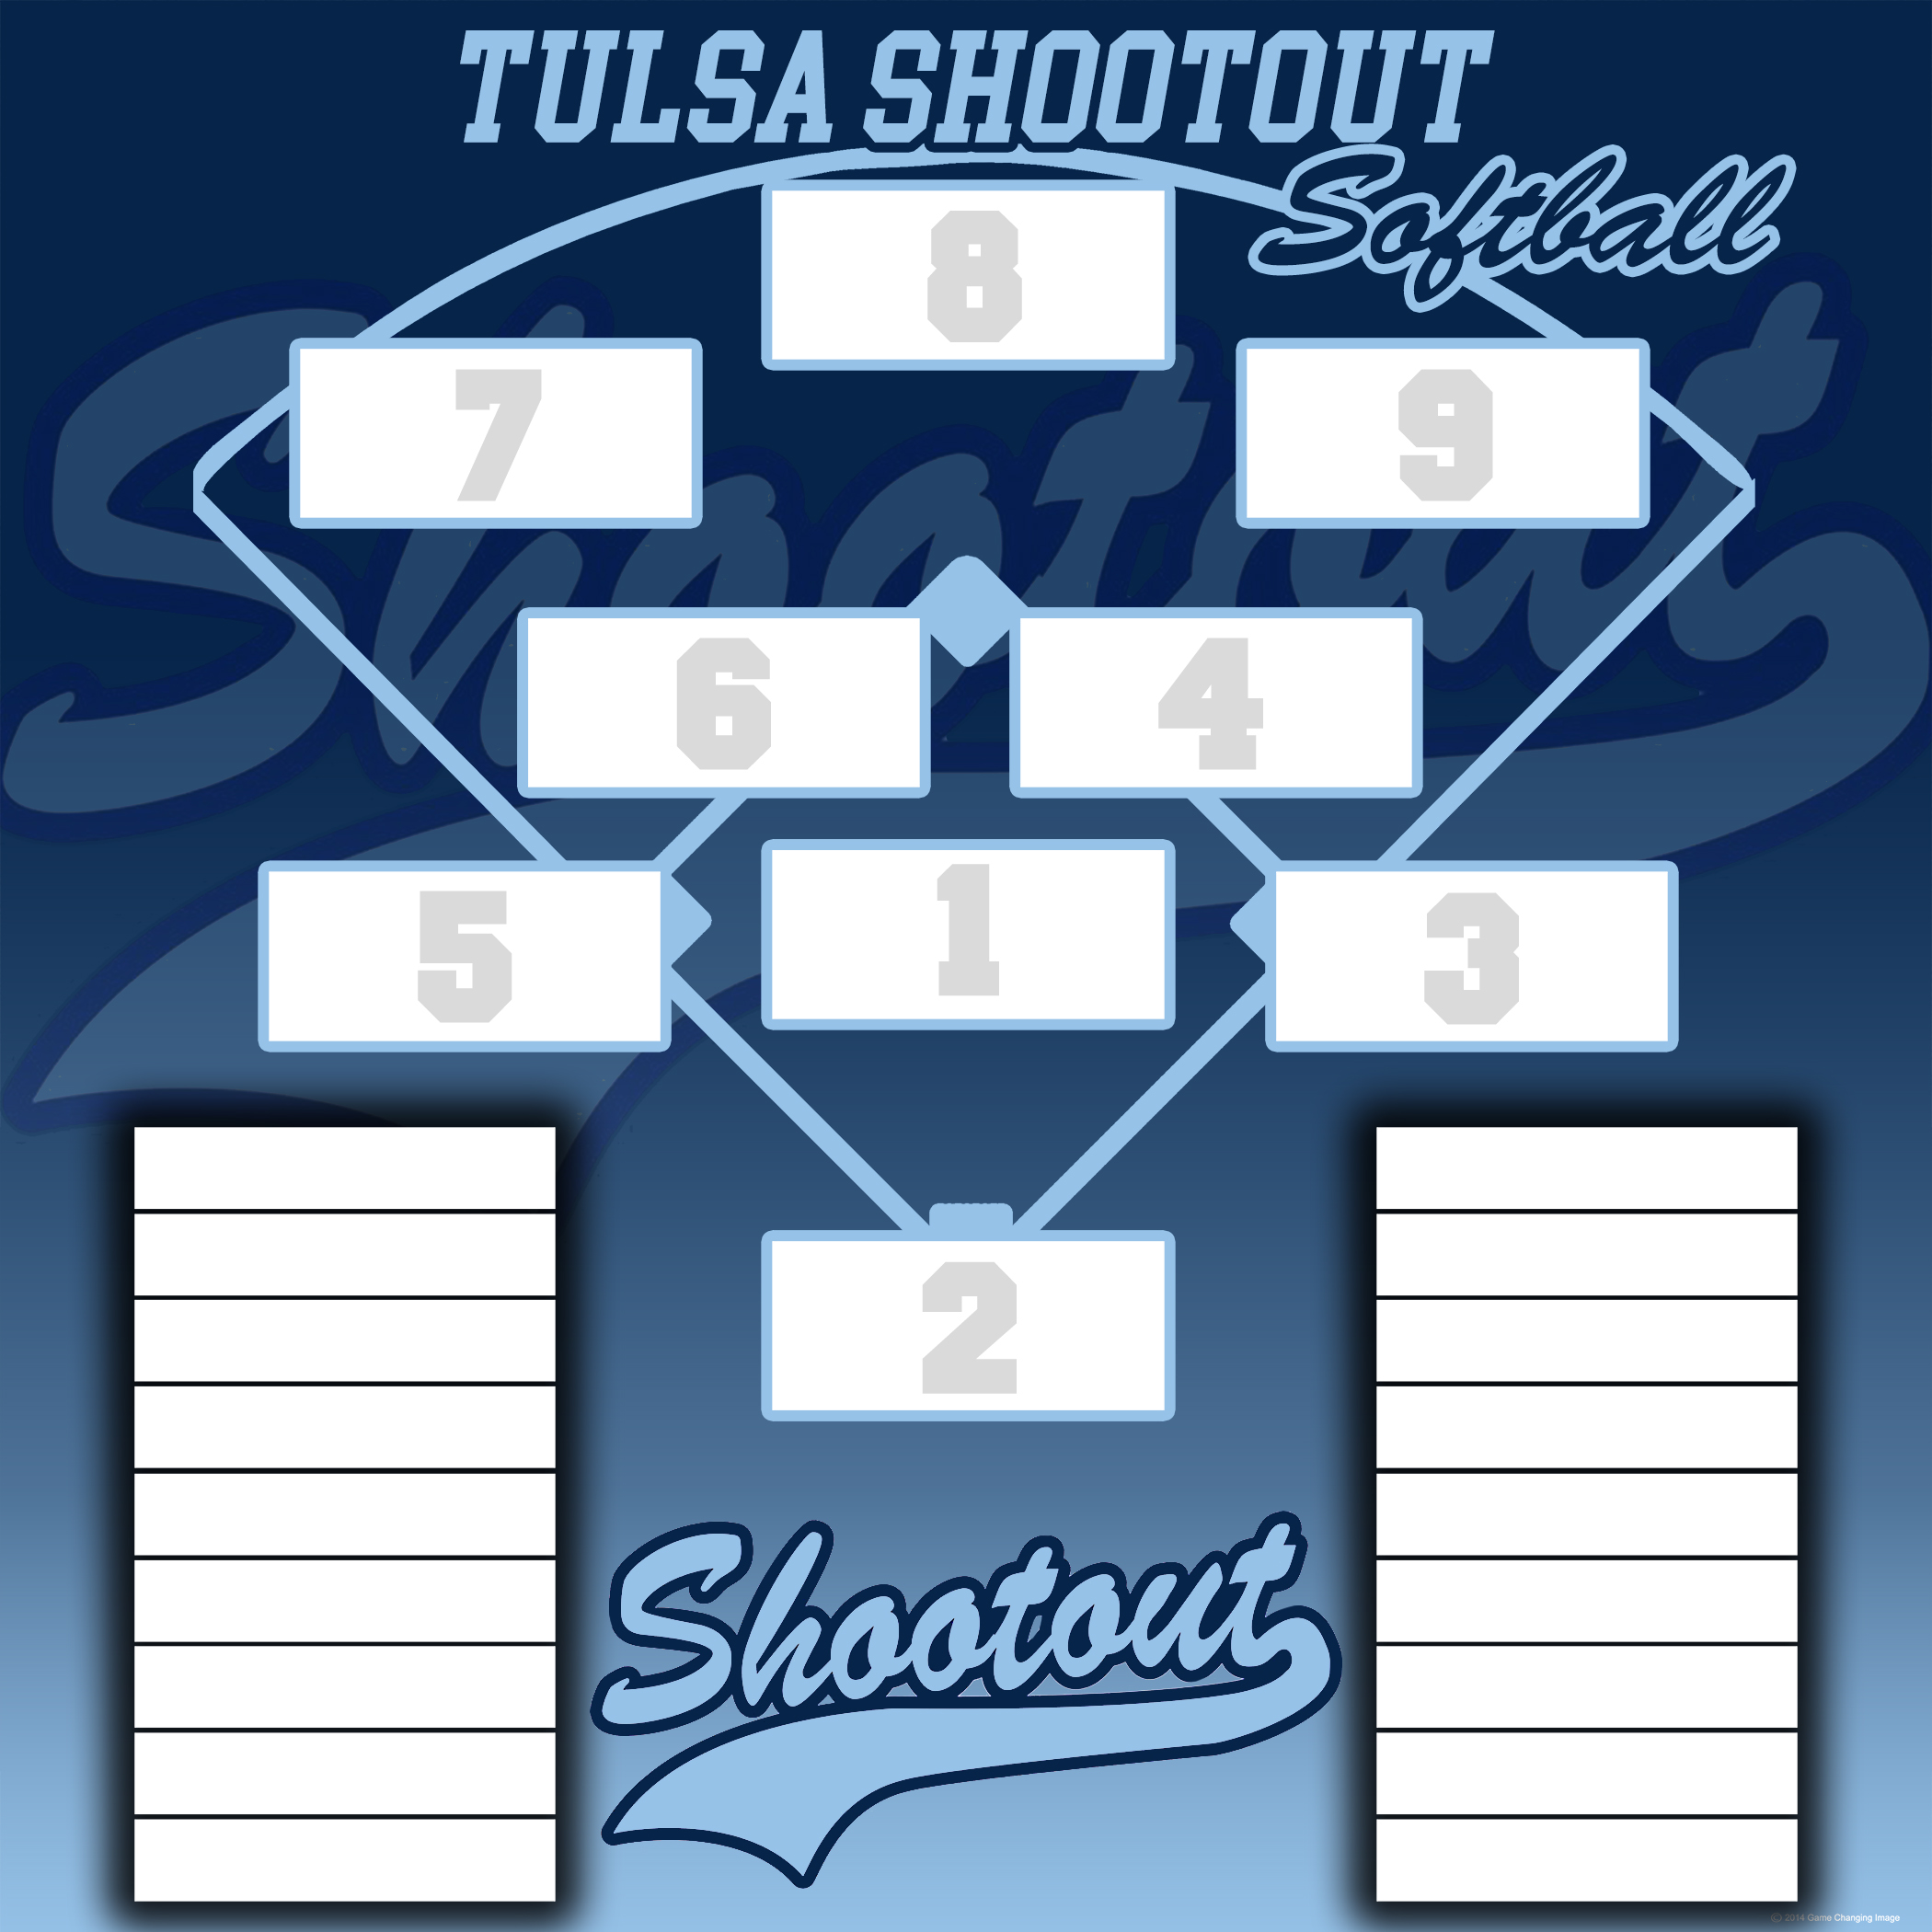 TULSA SHOOTOUT LINEUP BOARD 1-16